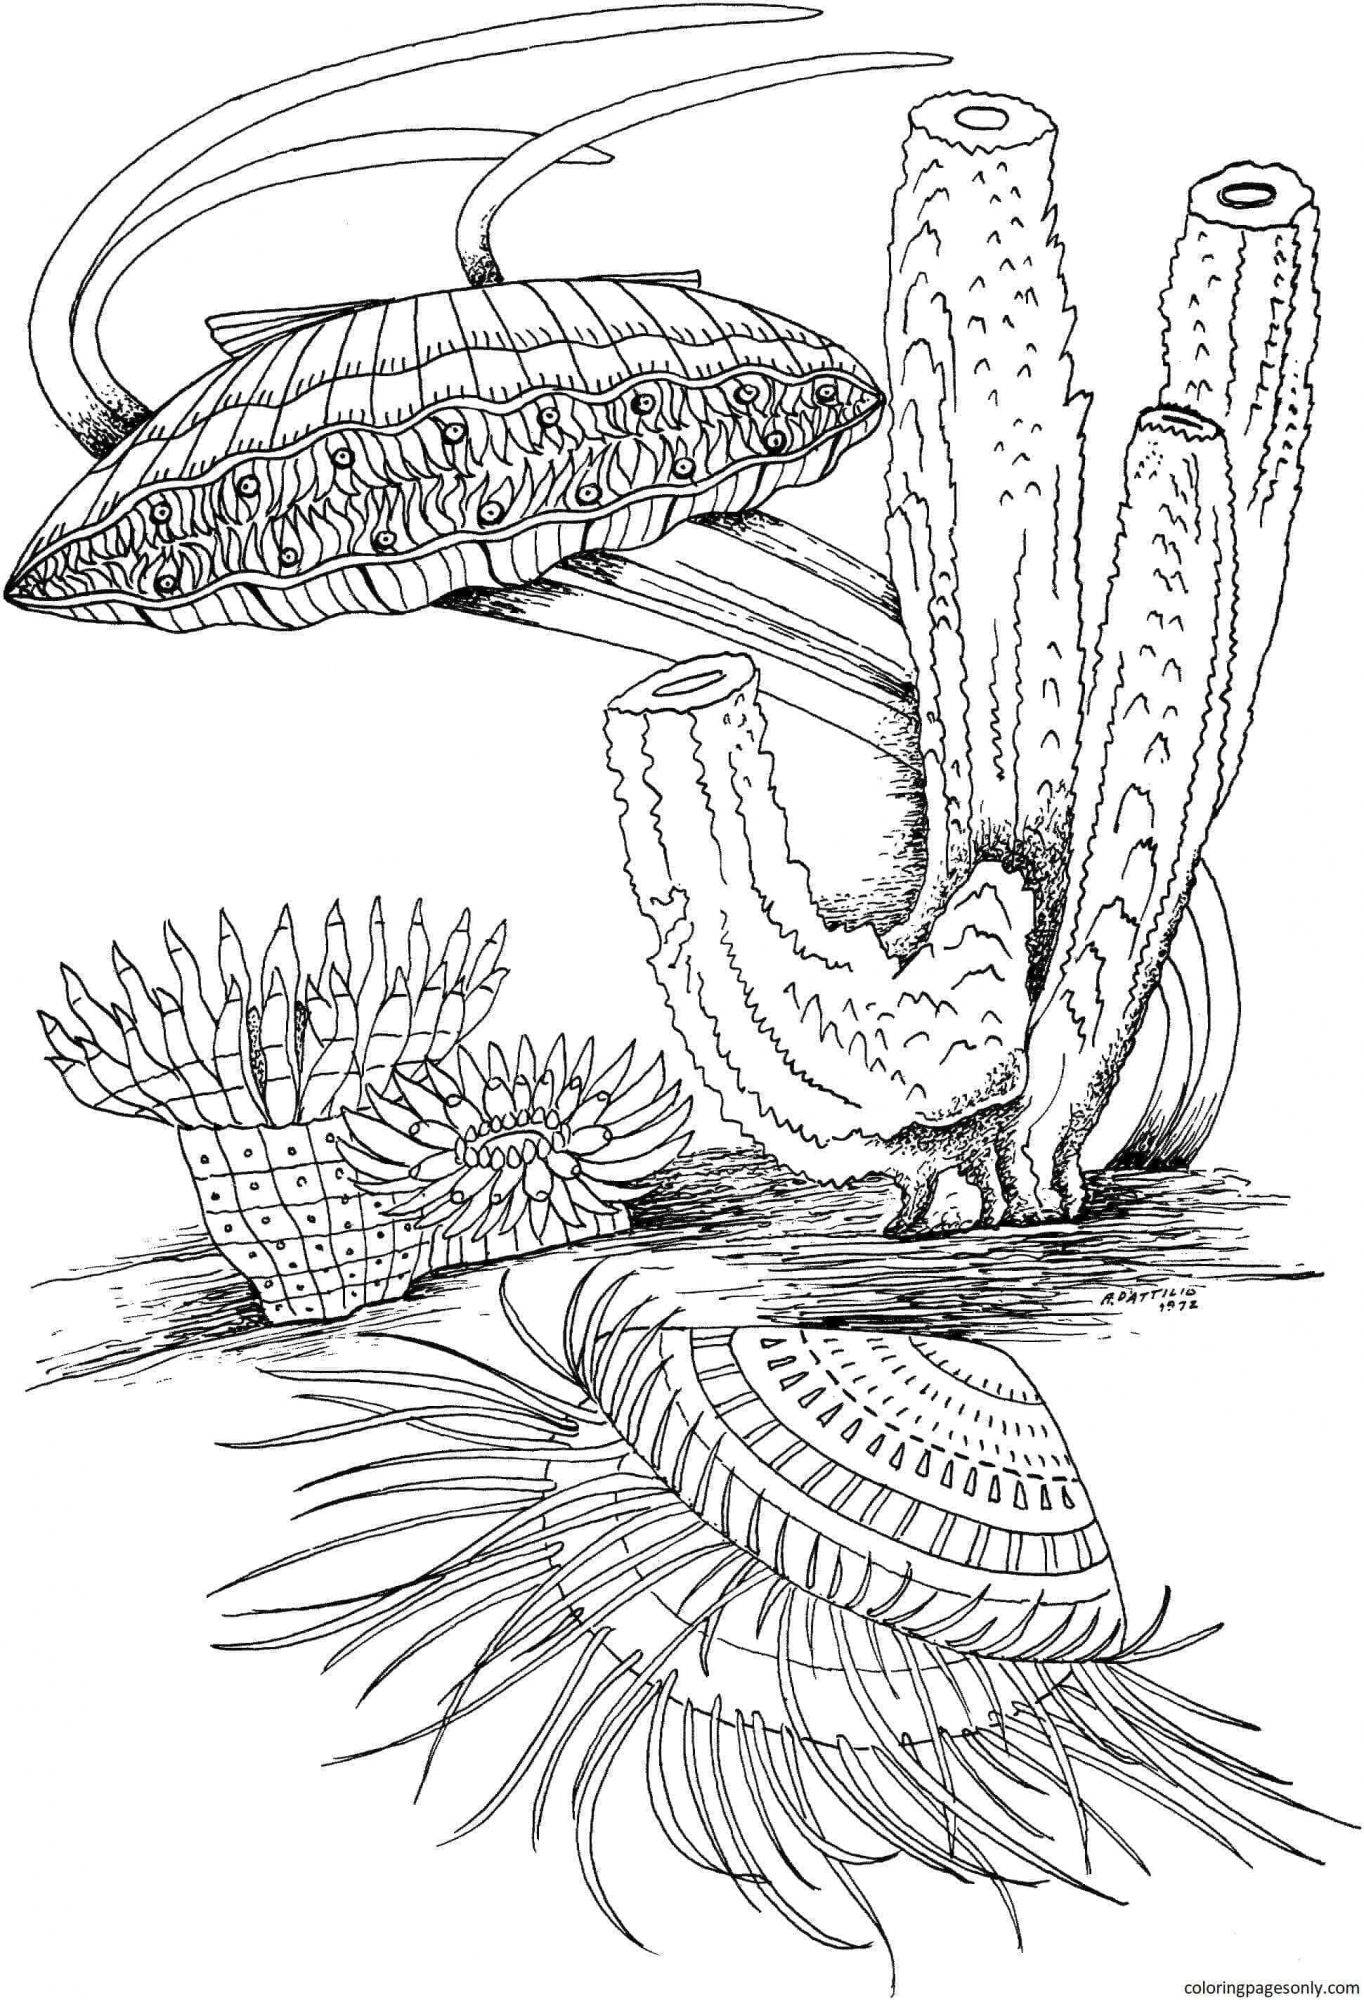 Clam Shell and Marine Life Coloring Page